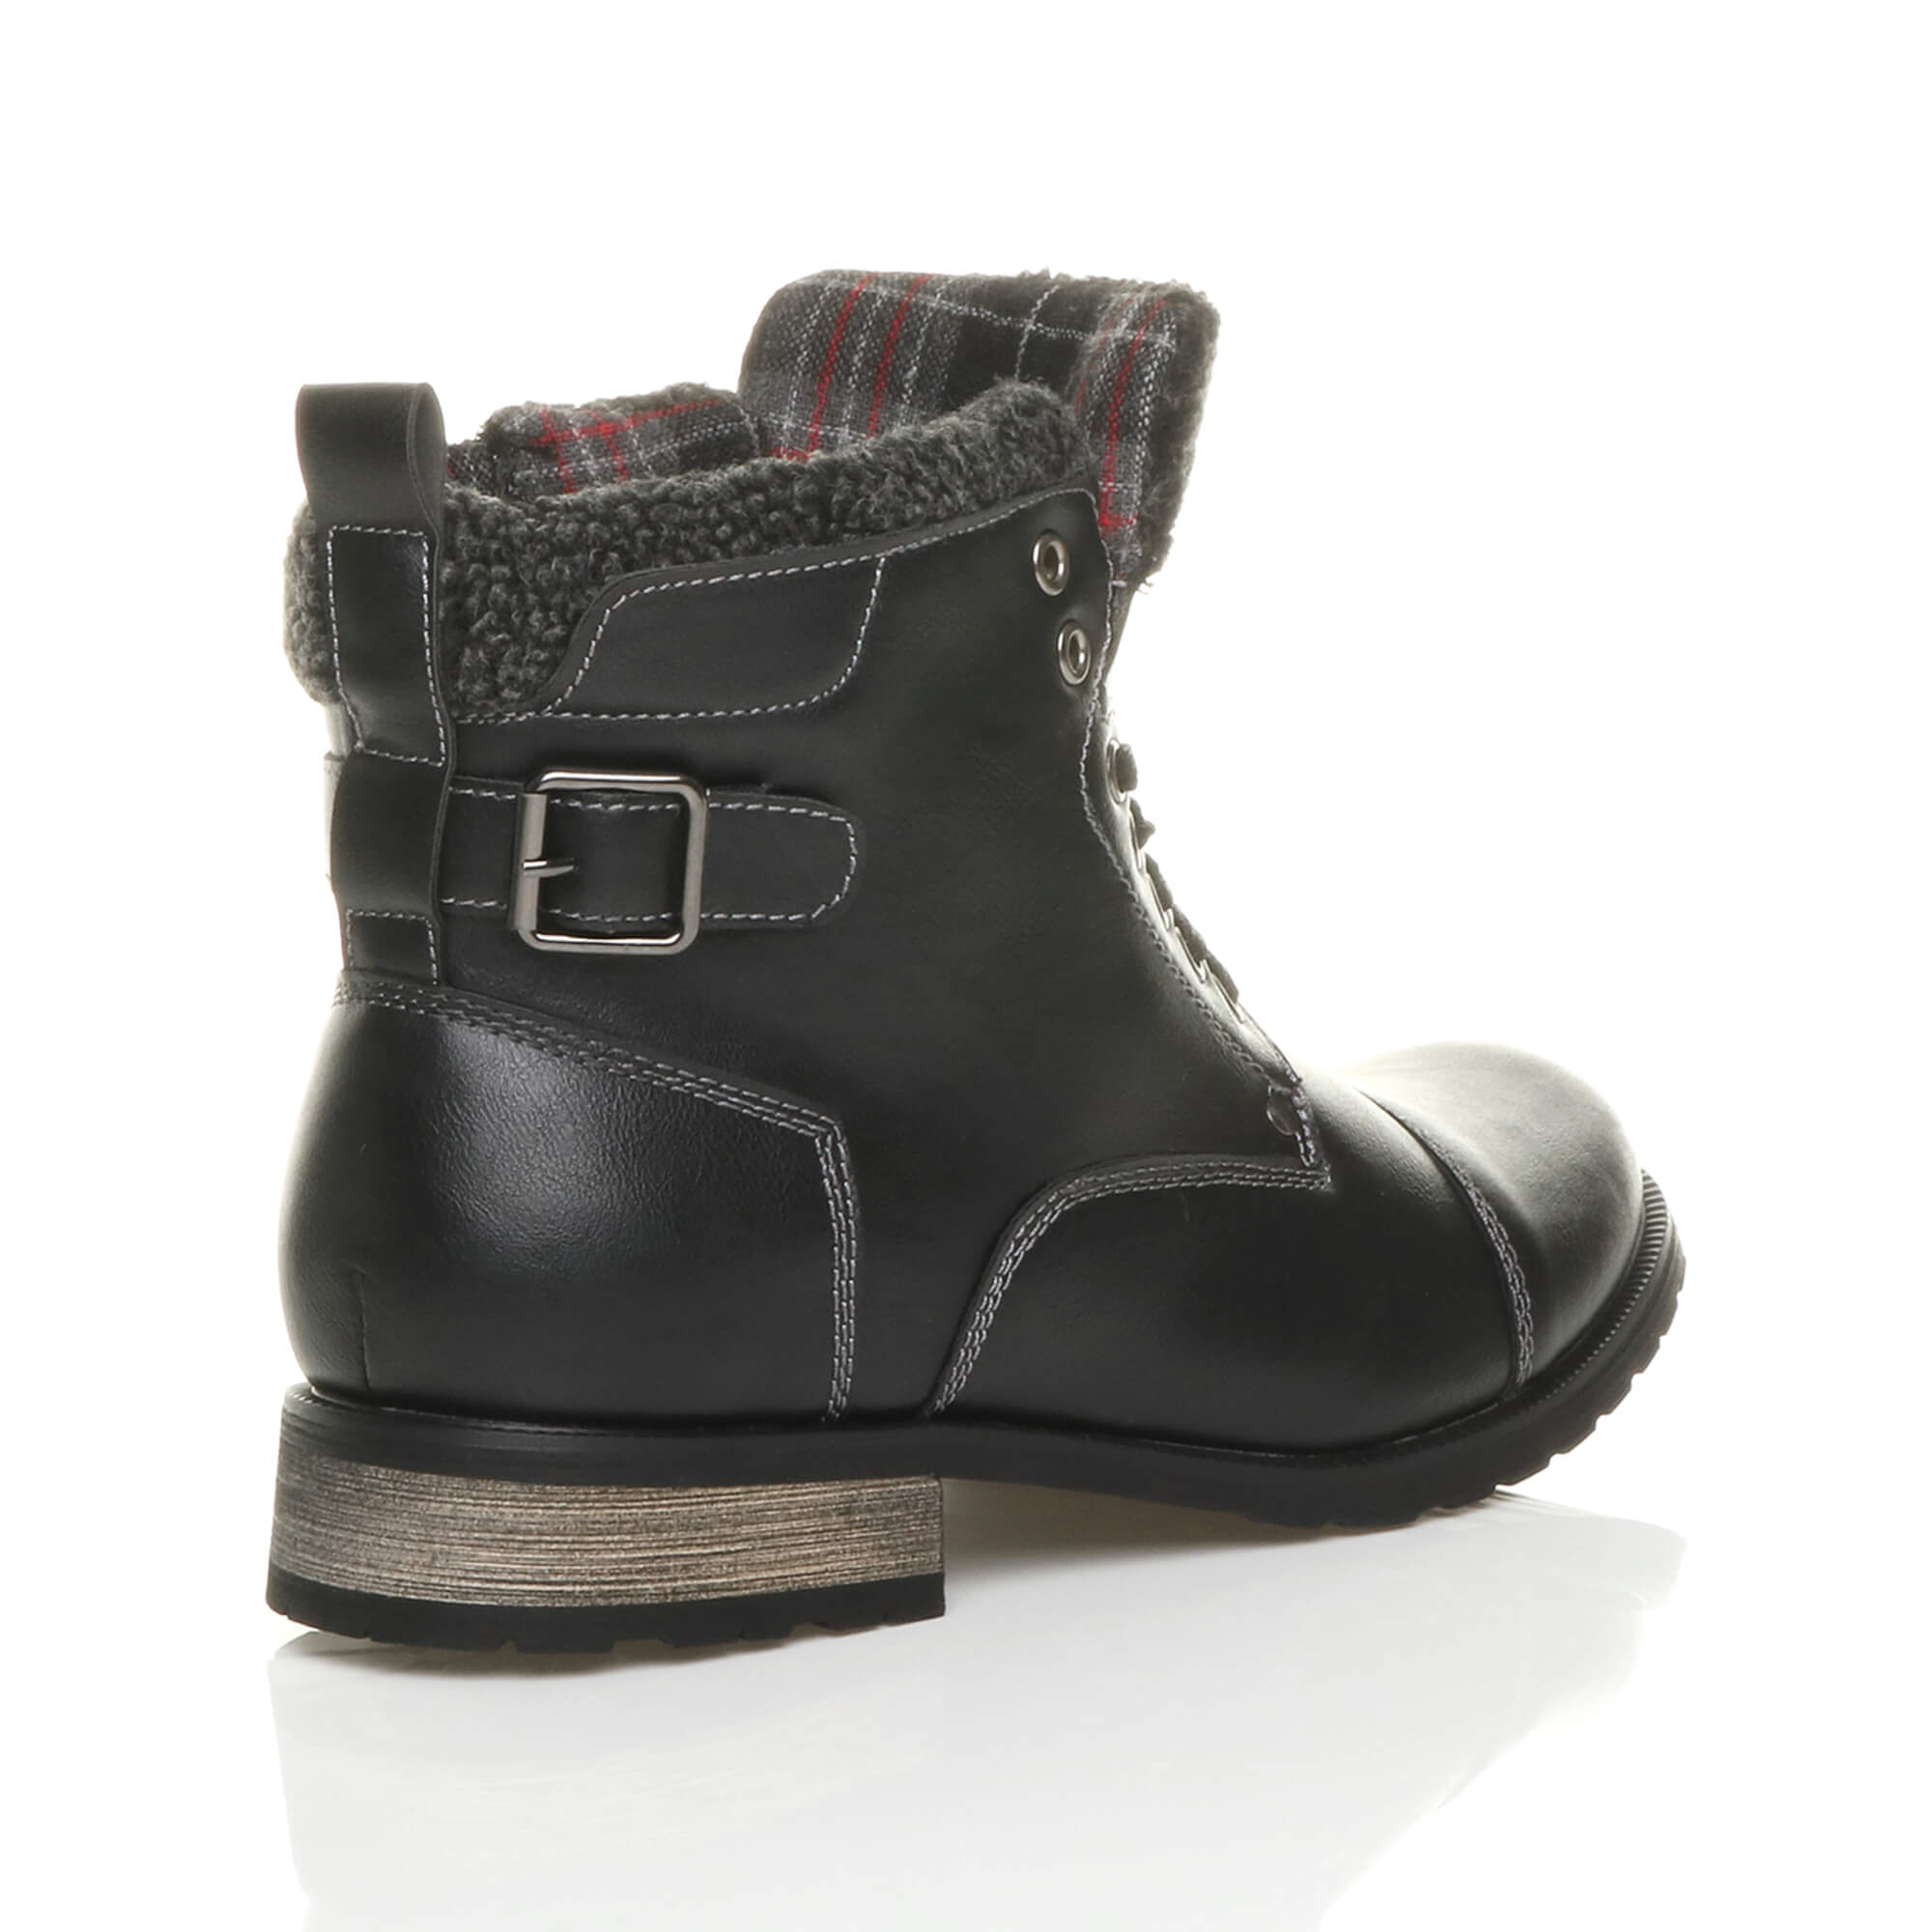 MENS-LACE-UP-ZIP-FUR-TRIM-SMART-WORK-WINTER-ARMY-MILITARY-BIKER-ANKLE-BOOTS-SIZE thumbnail 5